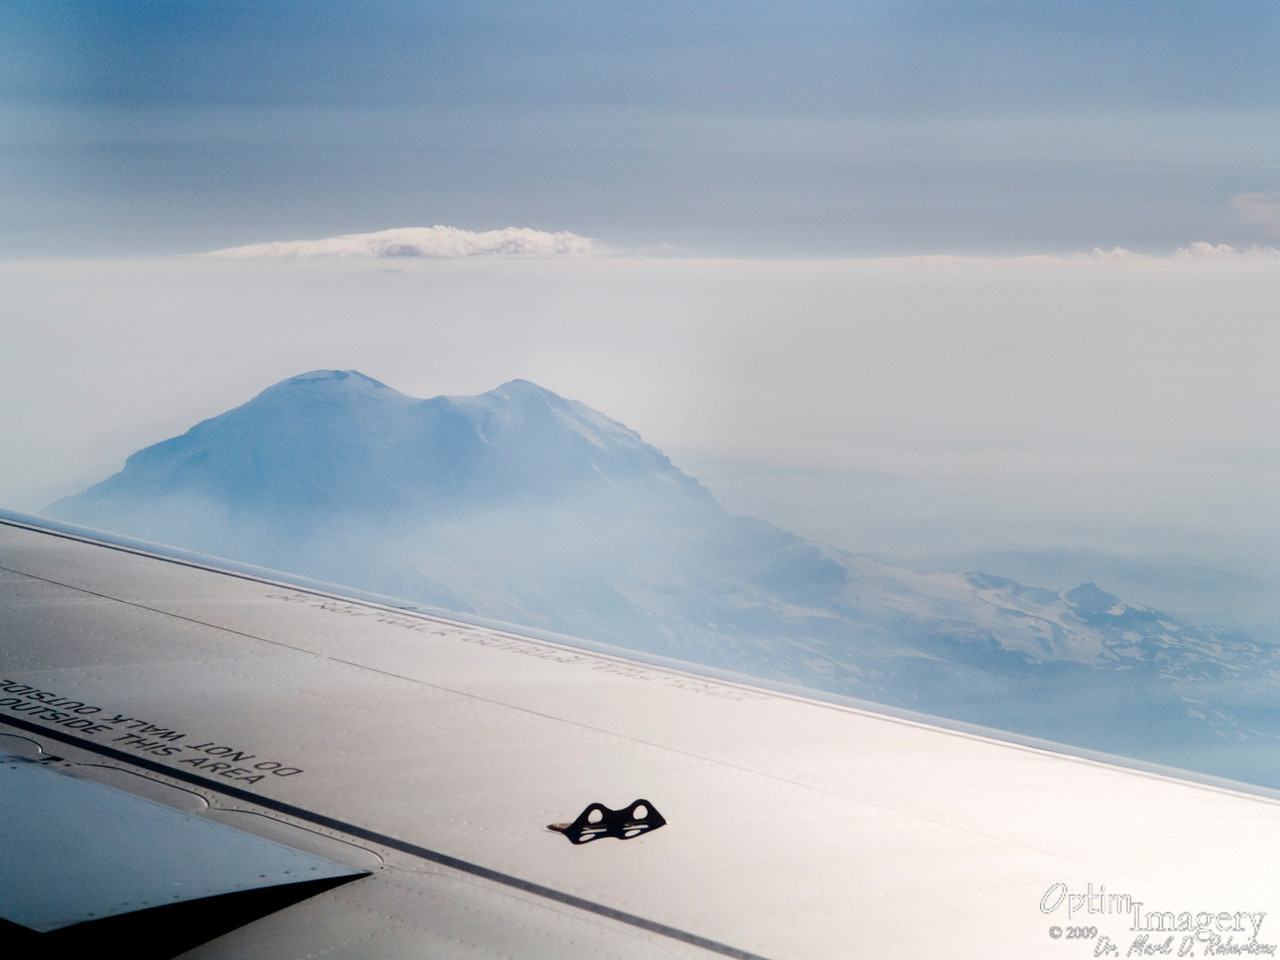 It's always a good omen when Mt. Rainier decides to peek out of the fog and welcome a traveler to the Pacific Northwest.